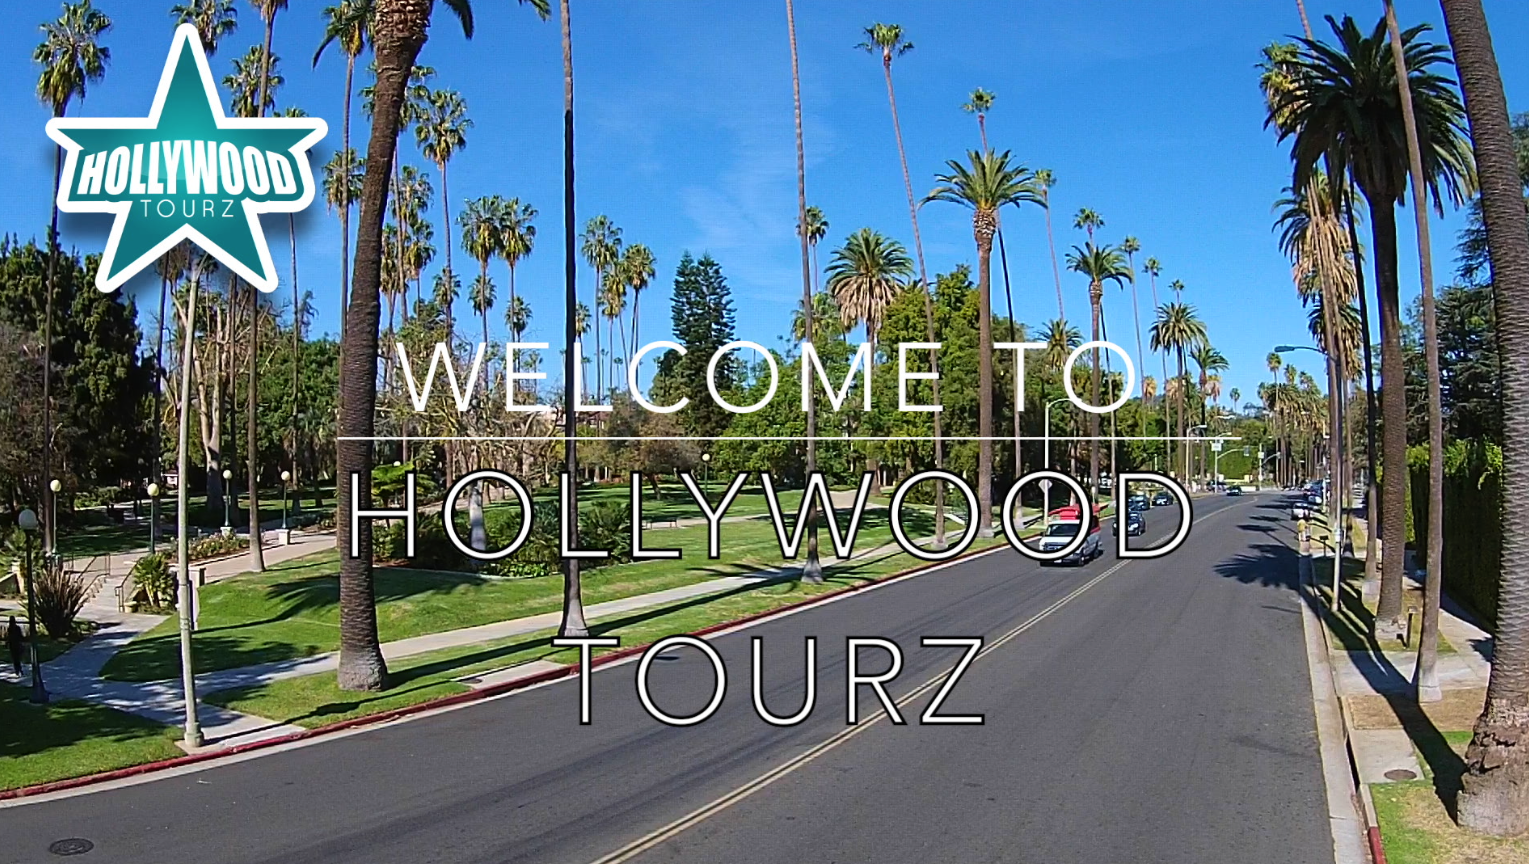 Hollywood Tours in Los Angeles- screenshot